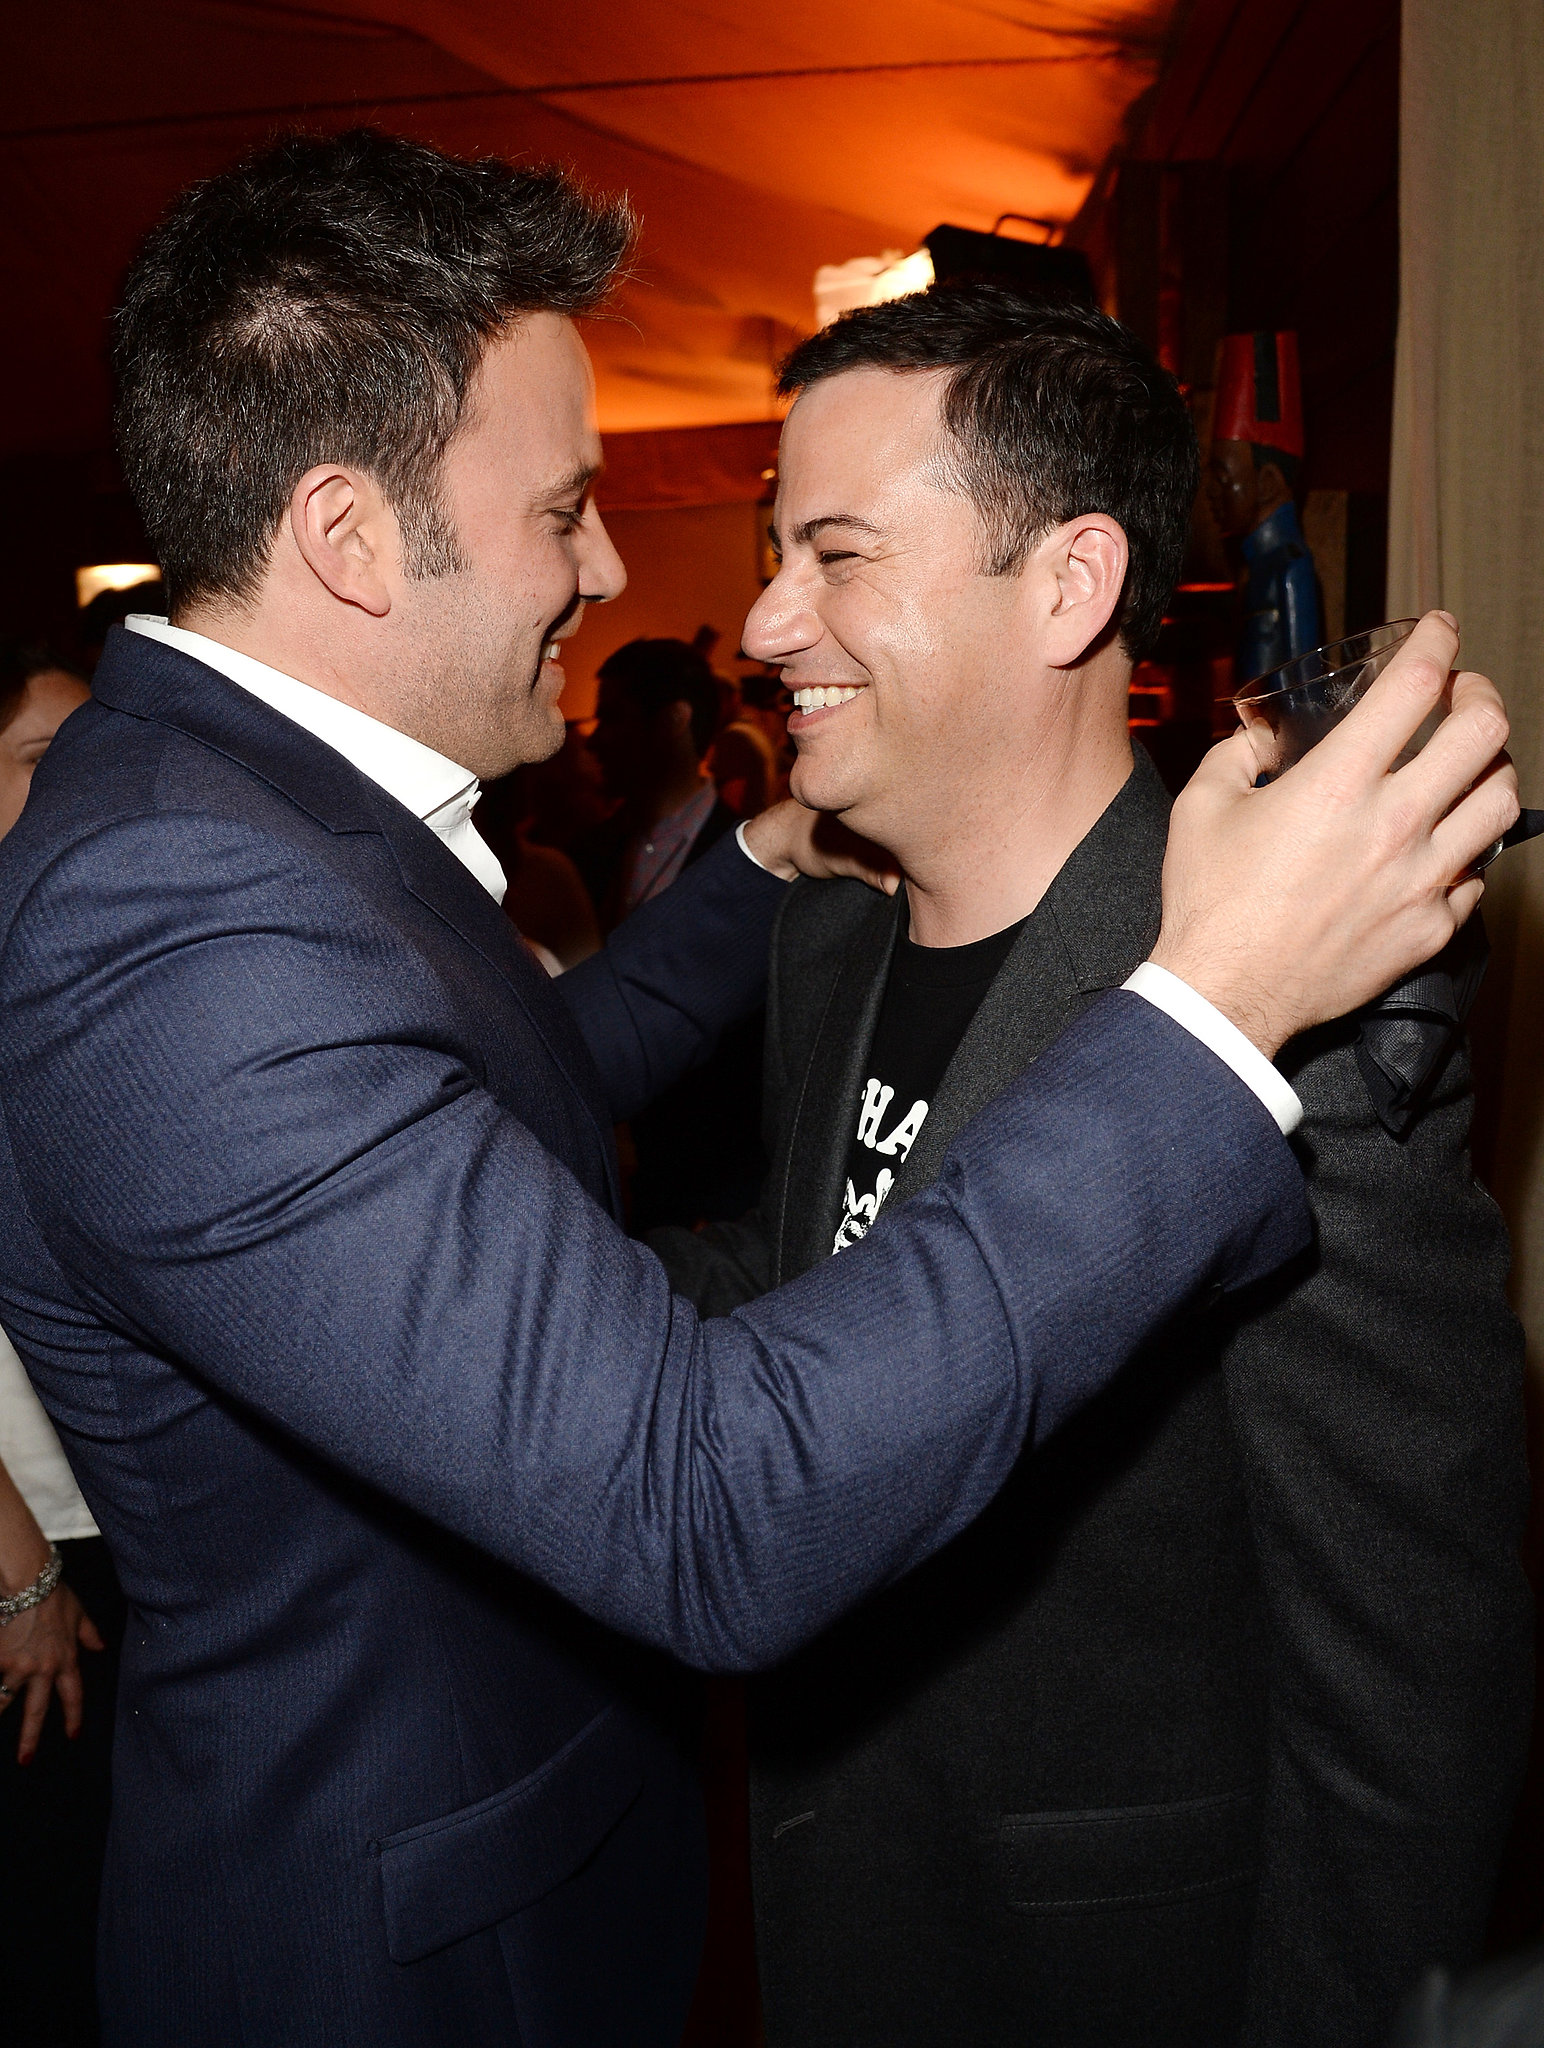 Ben Affleck and Jimmy Kimmel hugged it out backstage.